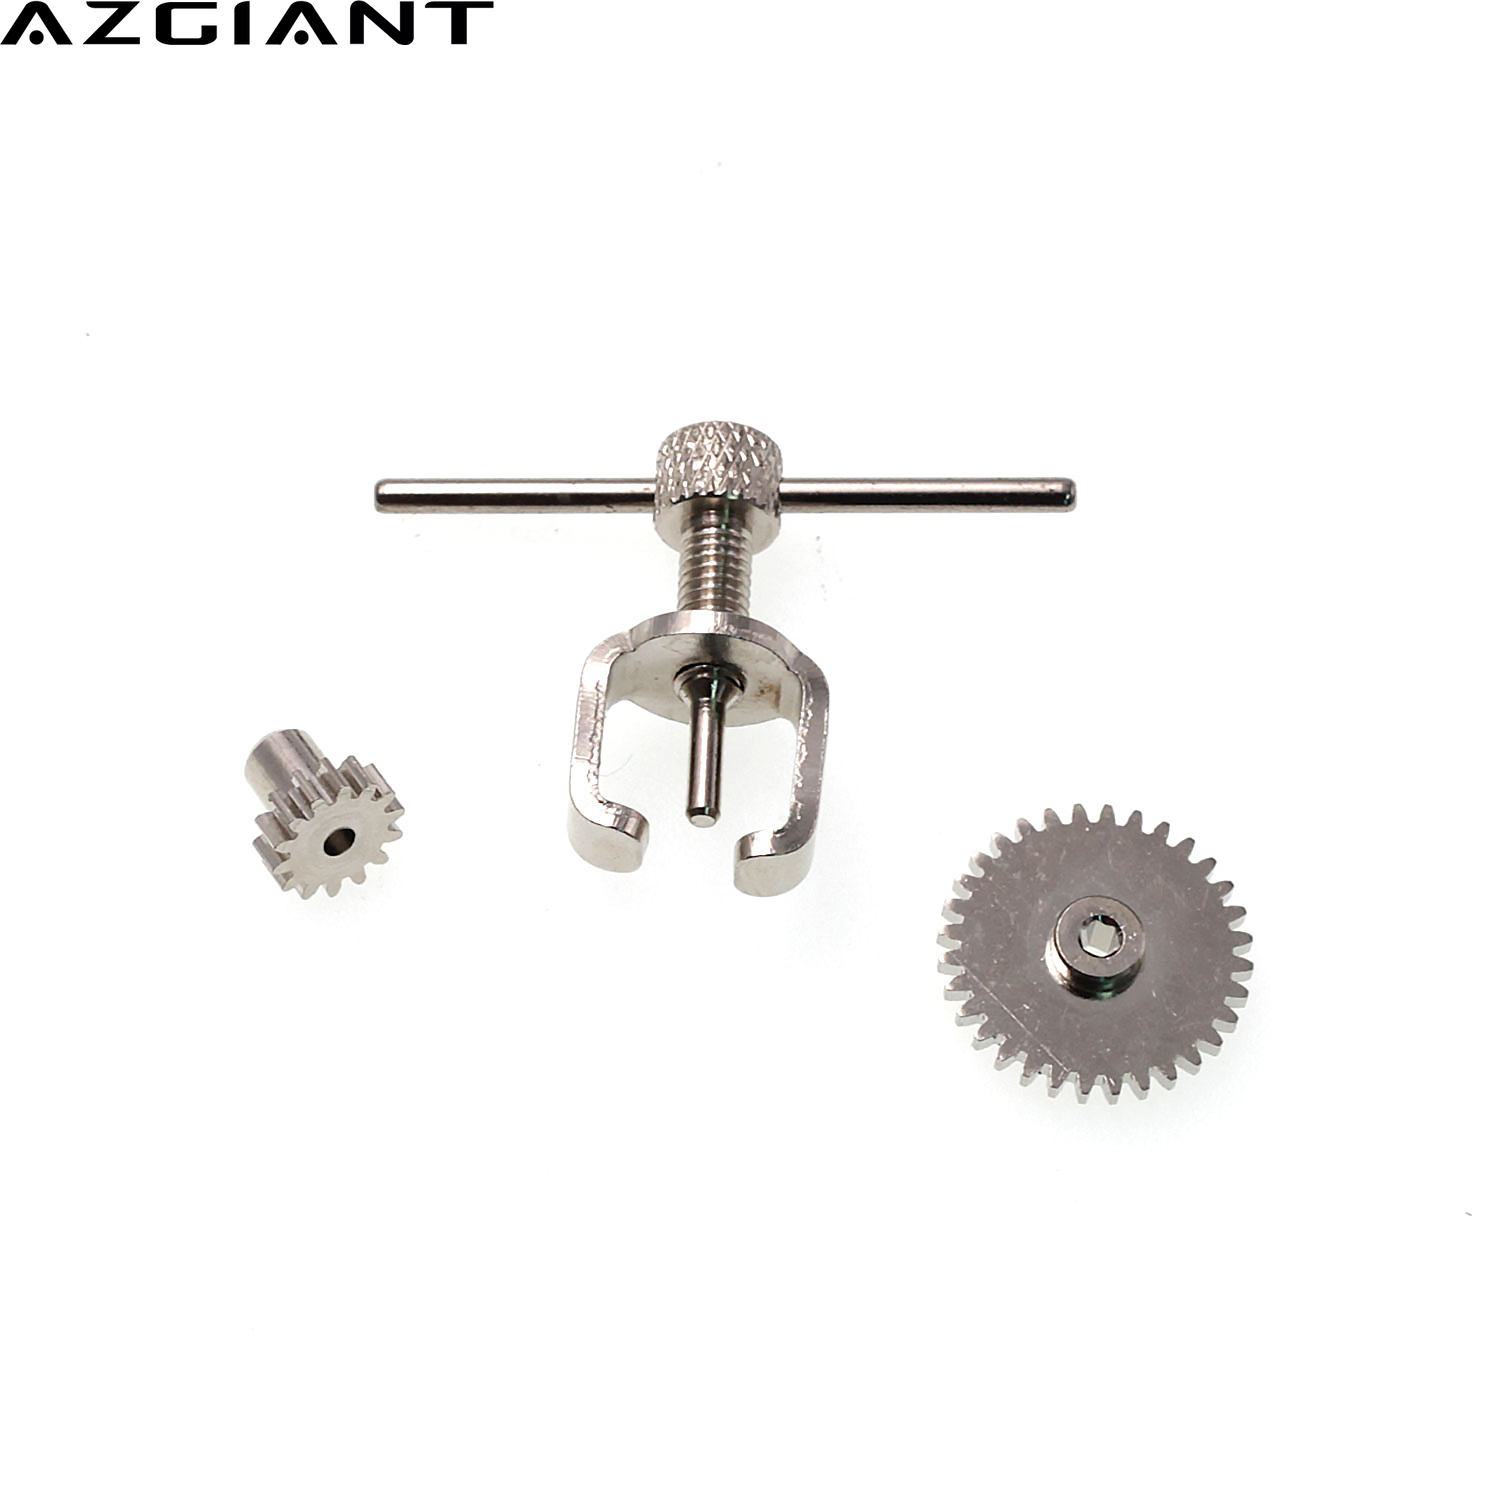 Small Metal Gear Puller Extractor For Easy Removal Motor Pinion Iron